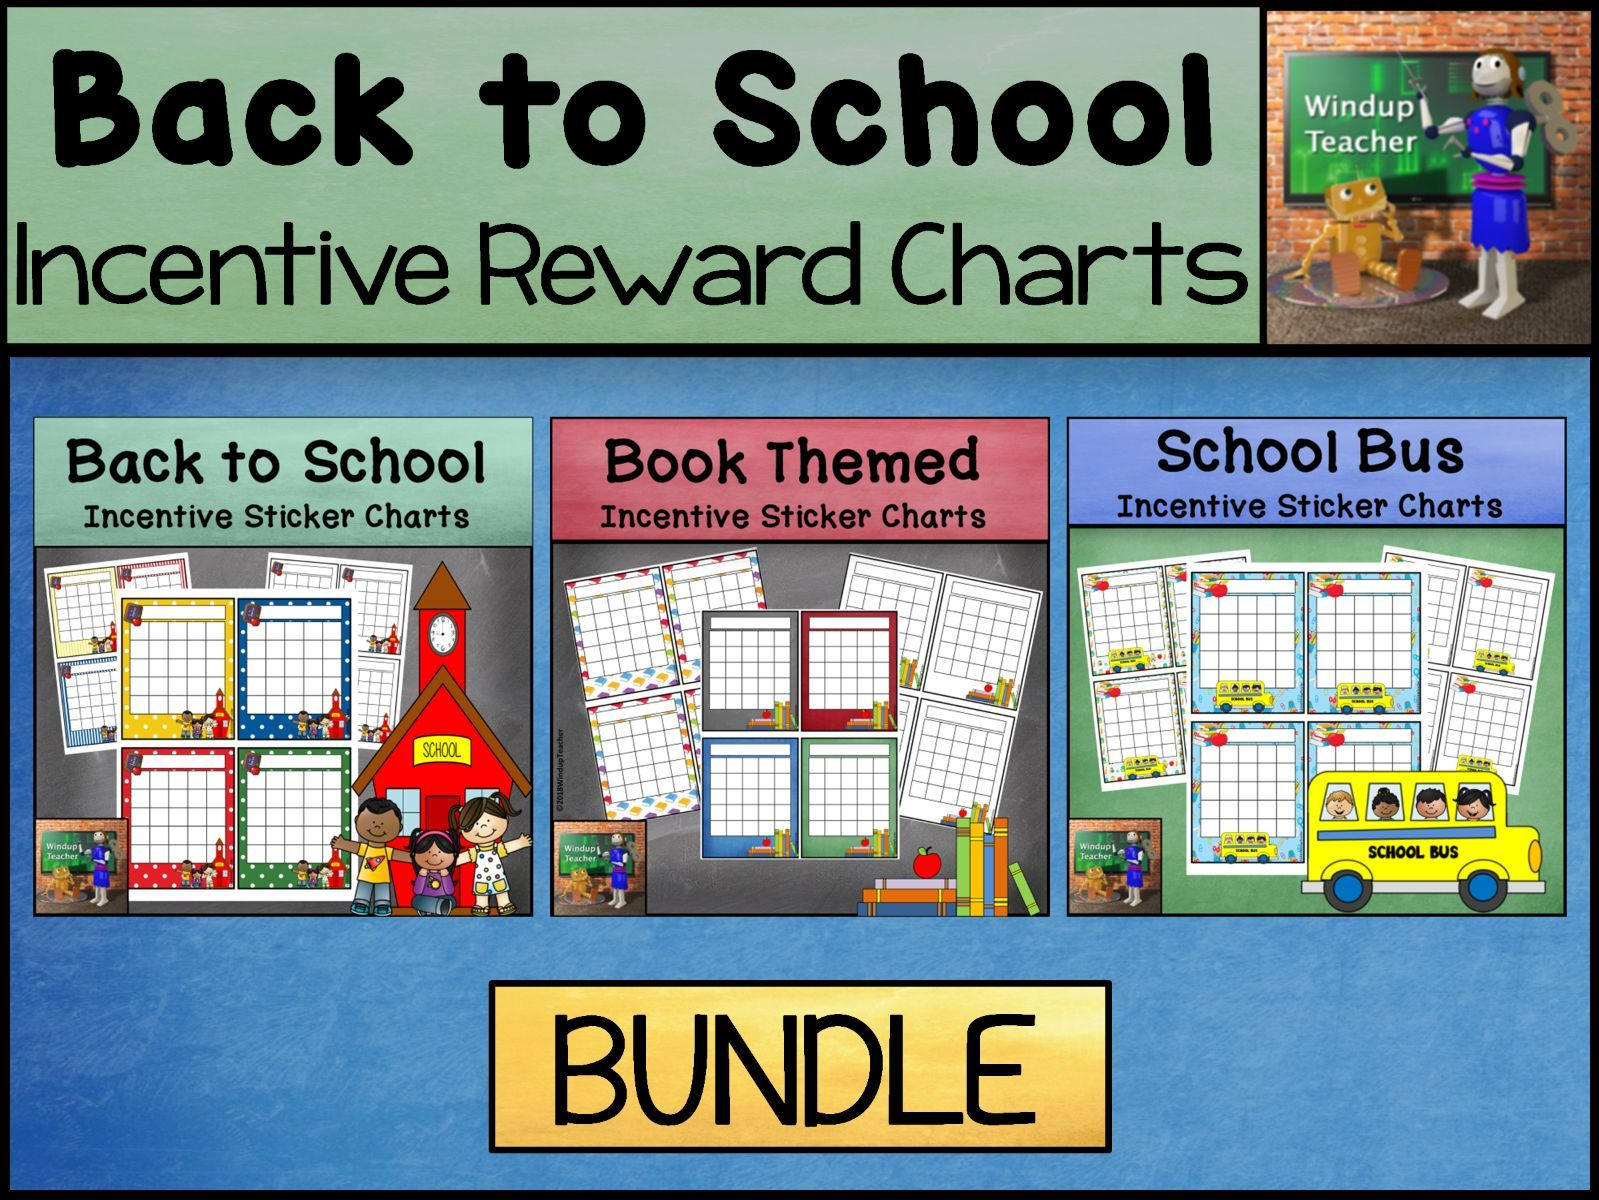 Back to School Sticker Charts | Rewards and Incentives | BUNDLE